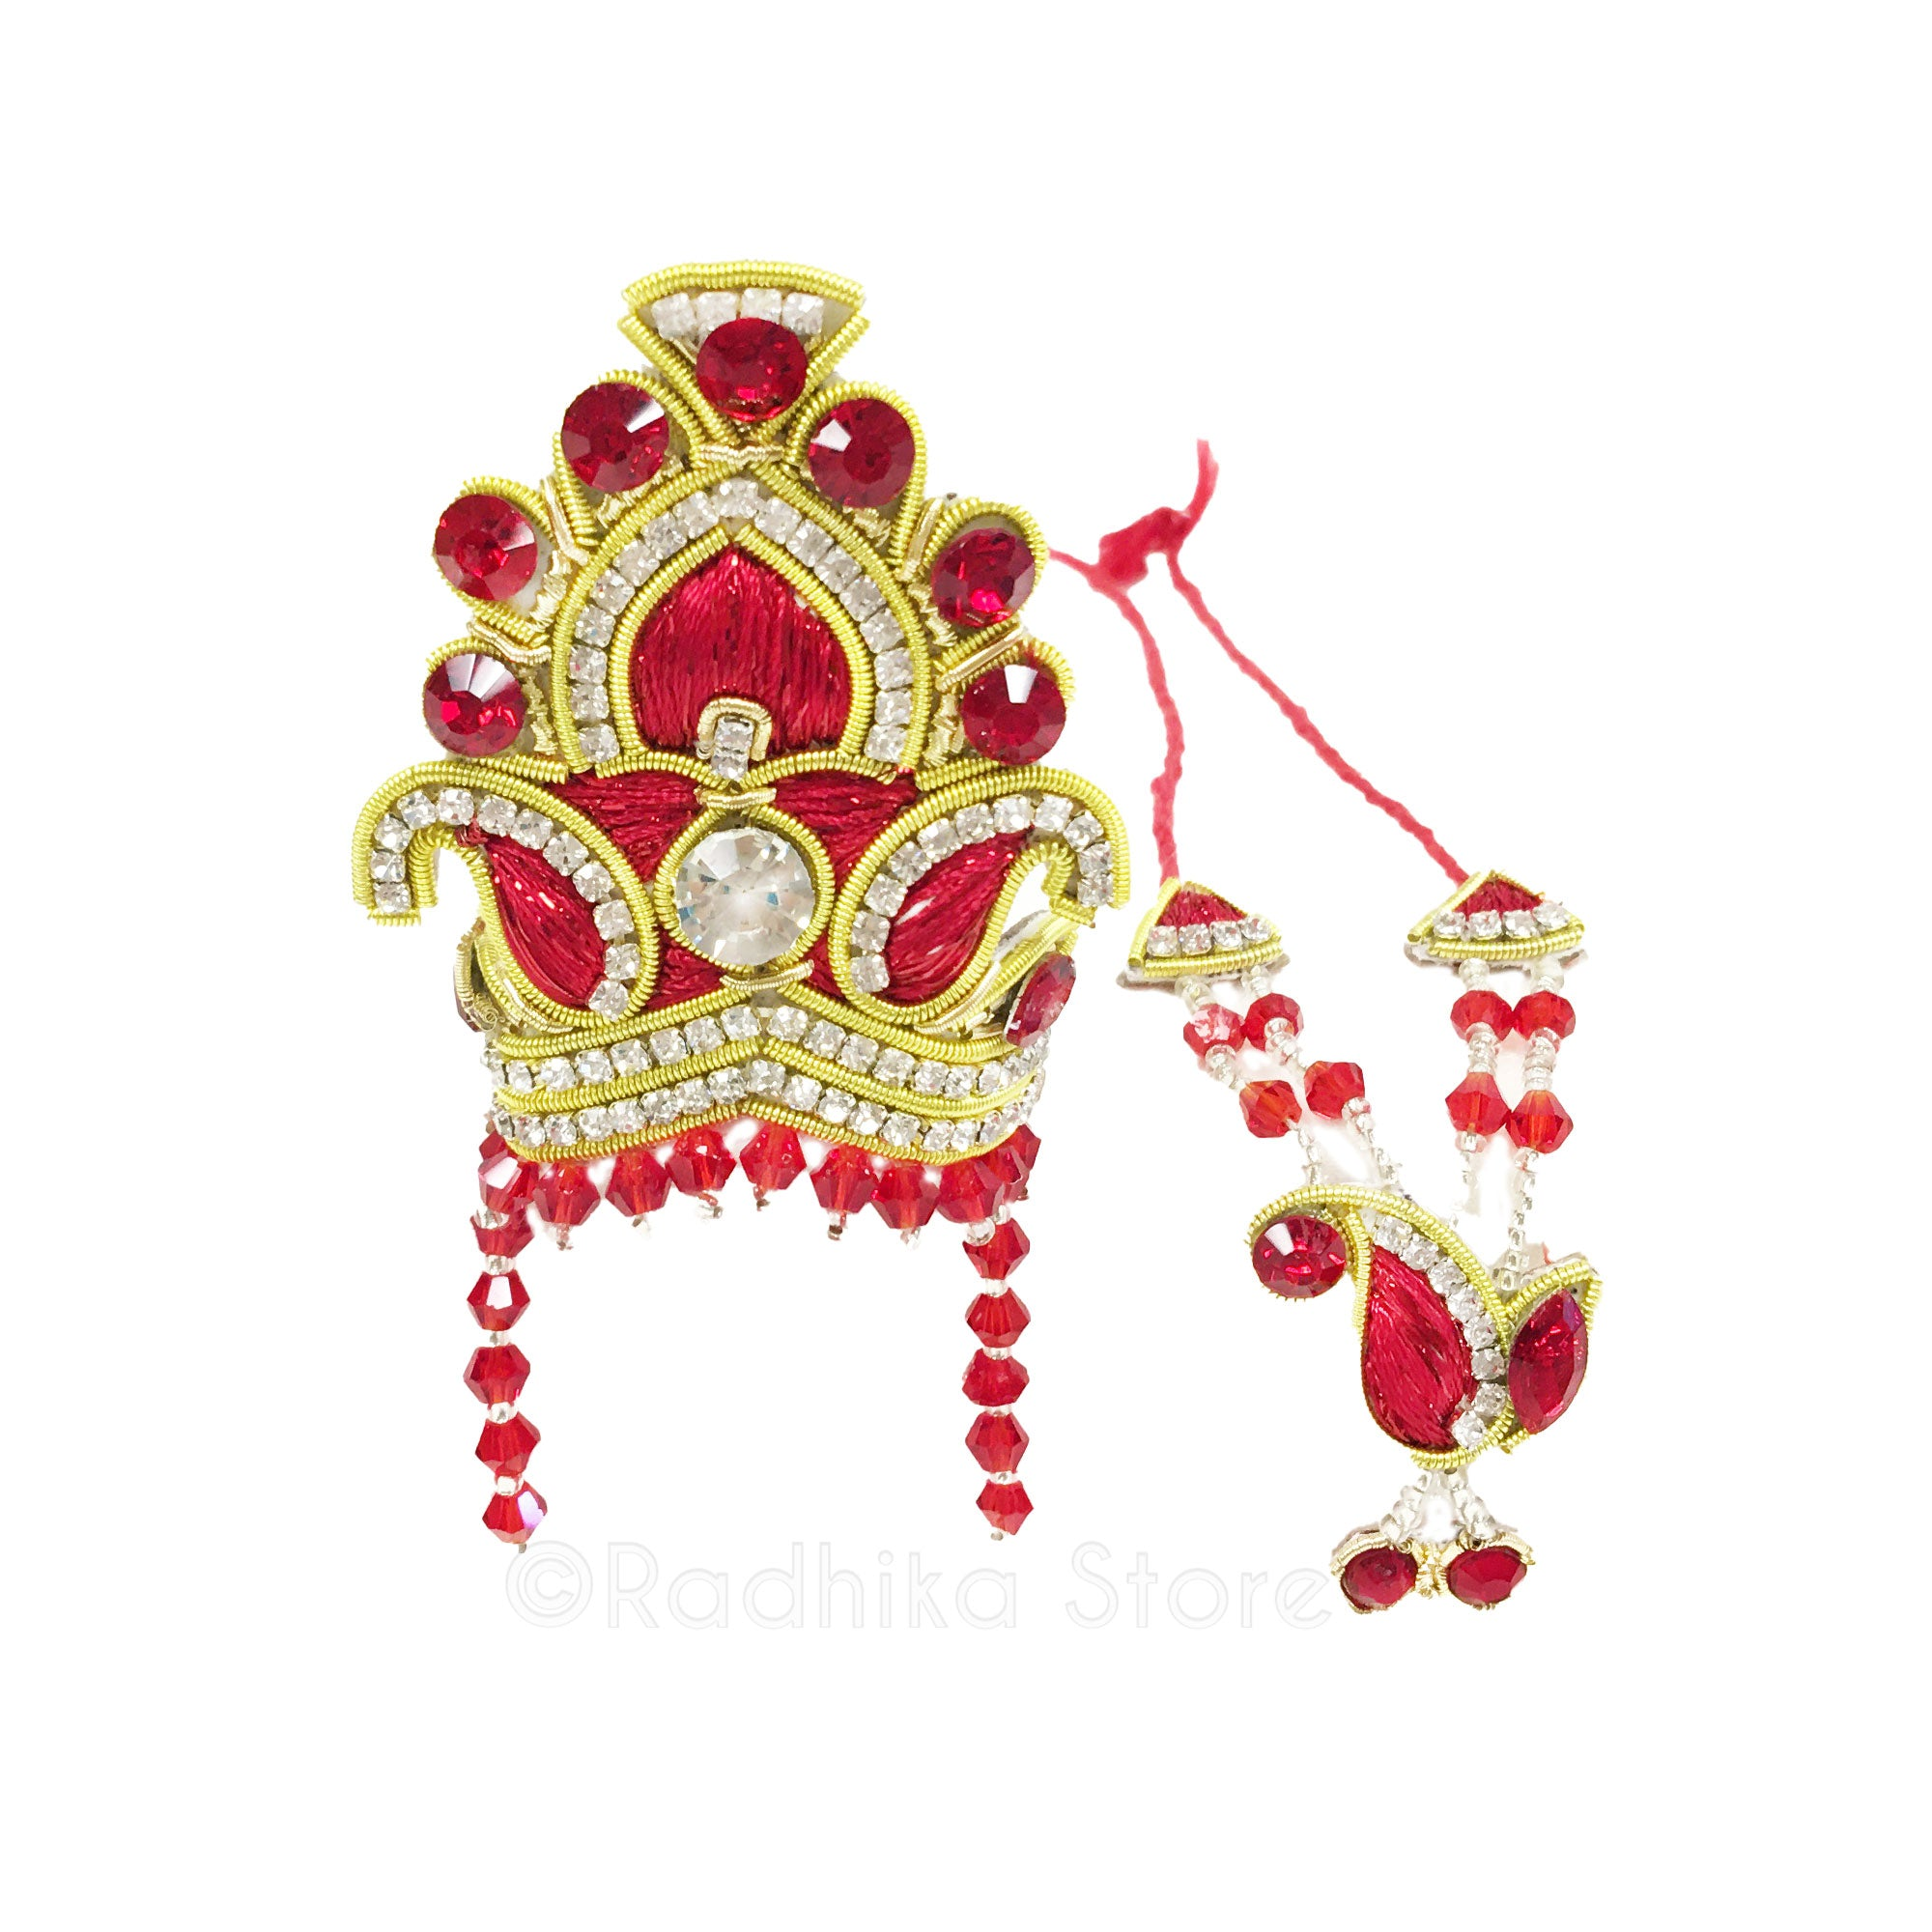 Lord of The Universe - Deity Crown and Necklace Set